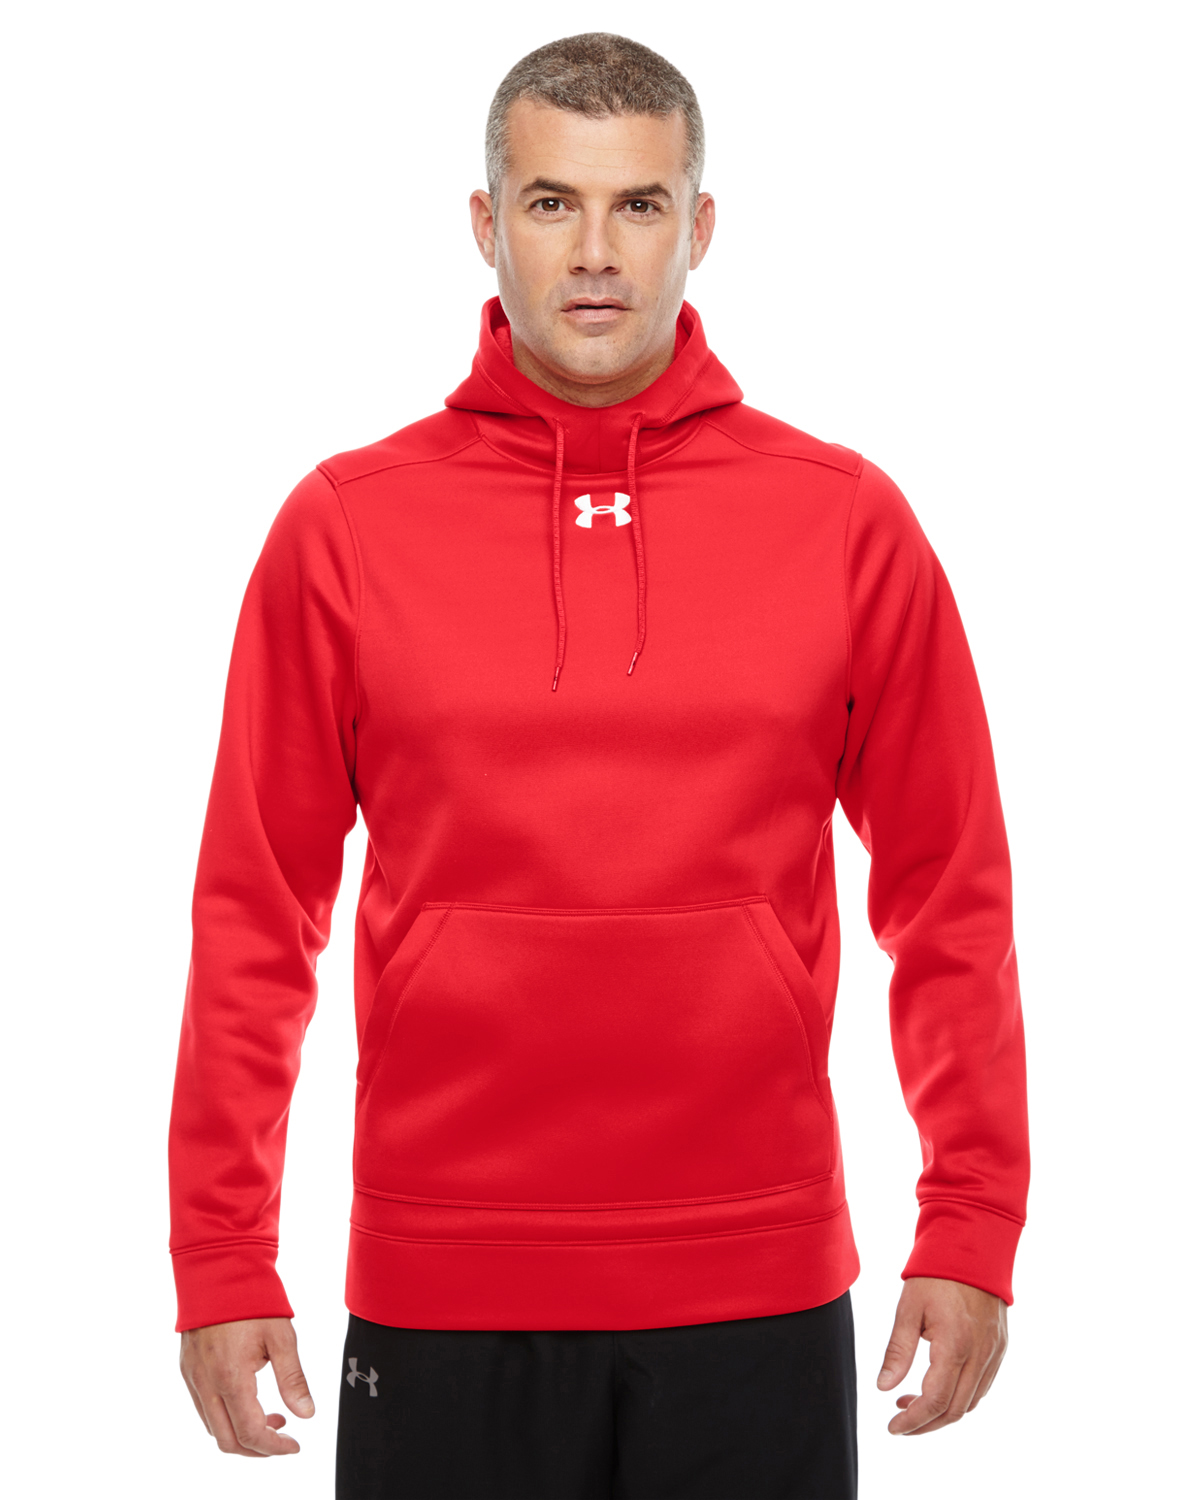 Under Armour 1259080 - Men's Storm Armour® Fleece ...